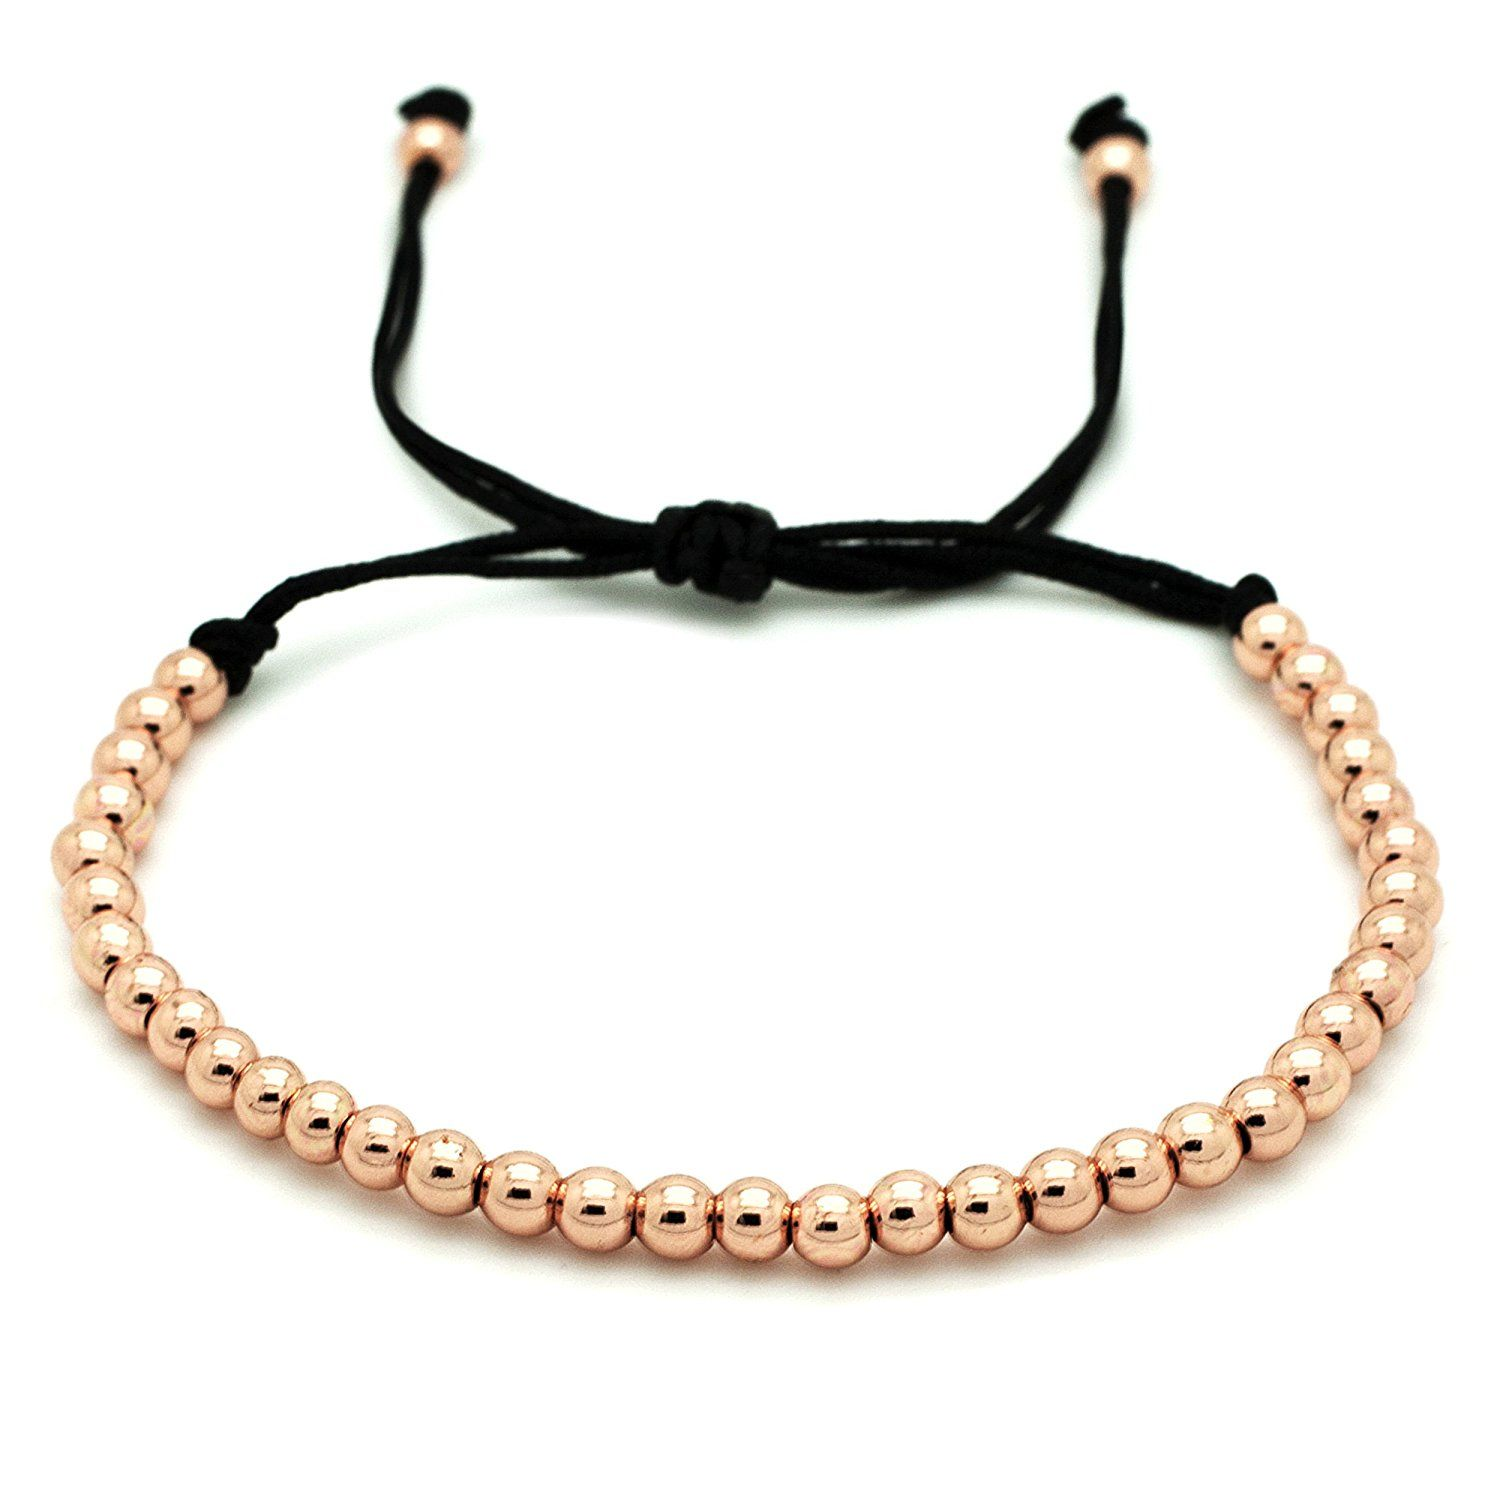 Unisex rose gold plated beaded bracelet with suay gift pouch